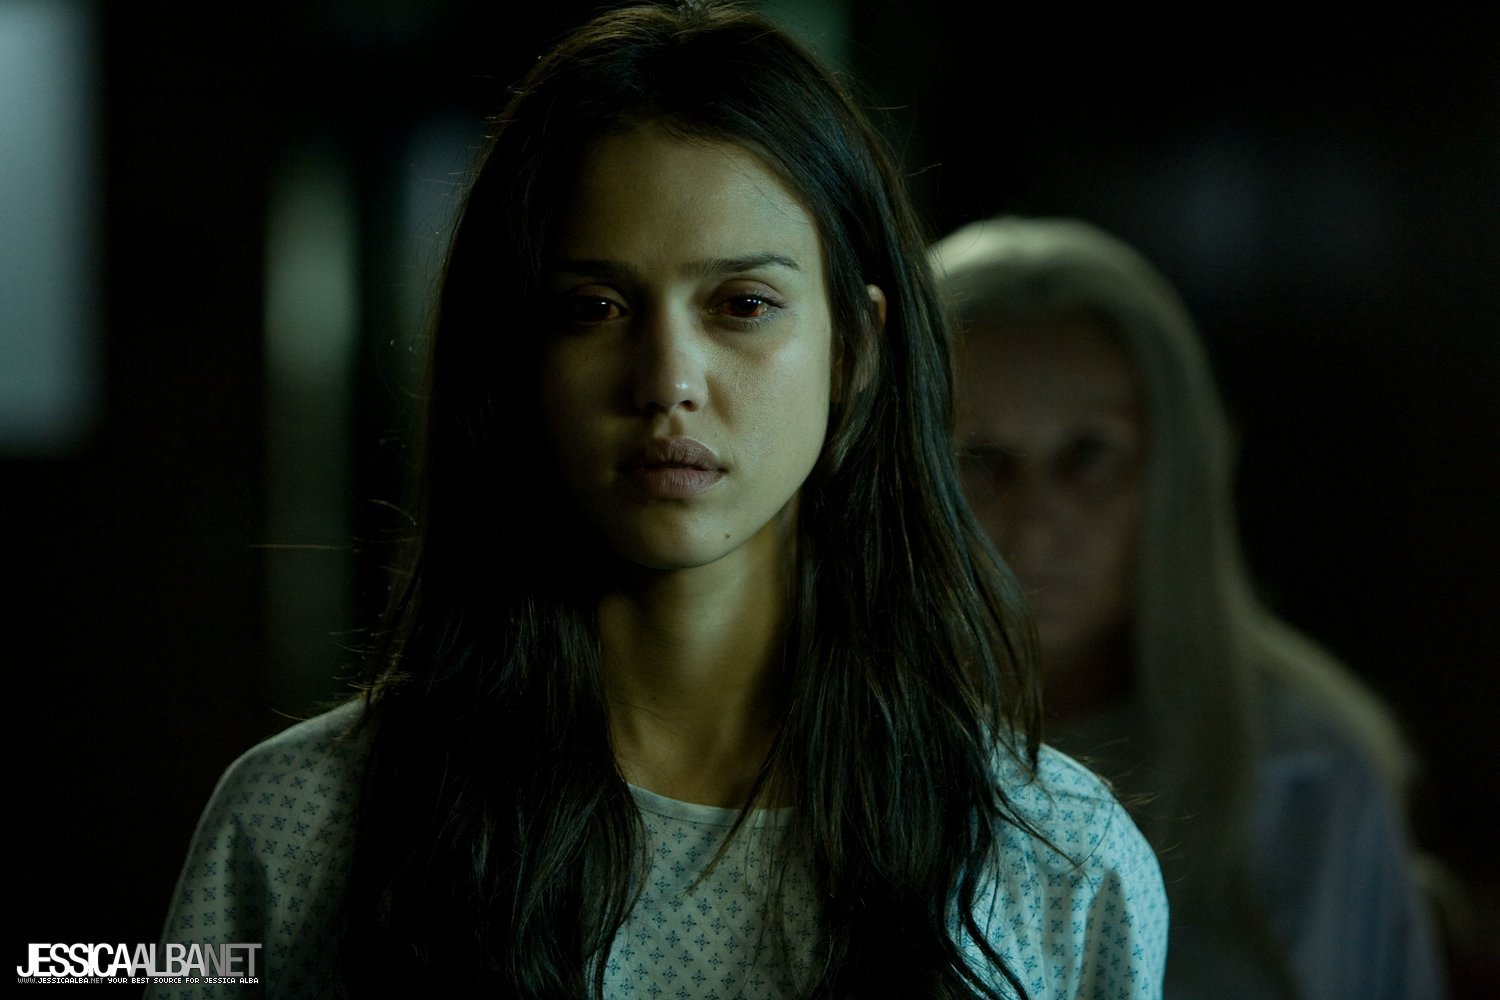 horror movies images jessica alba in the eye hd wallpaper